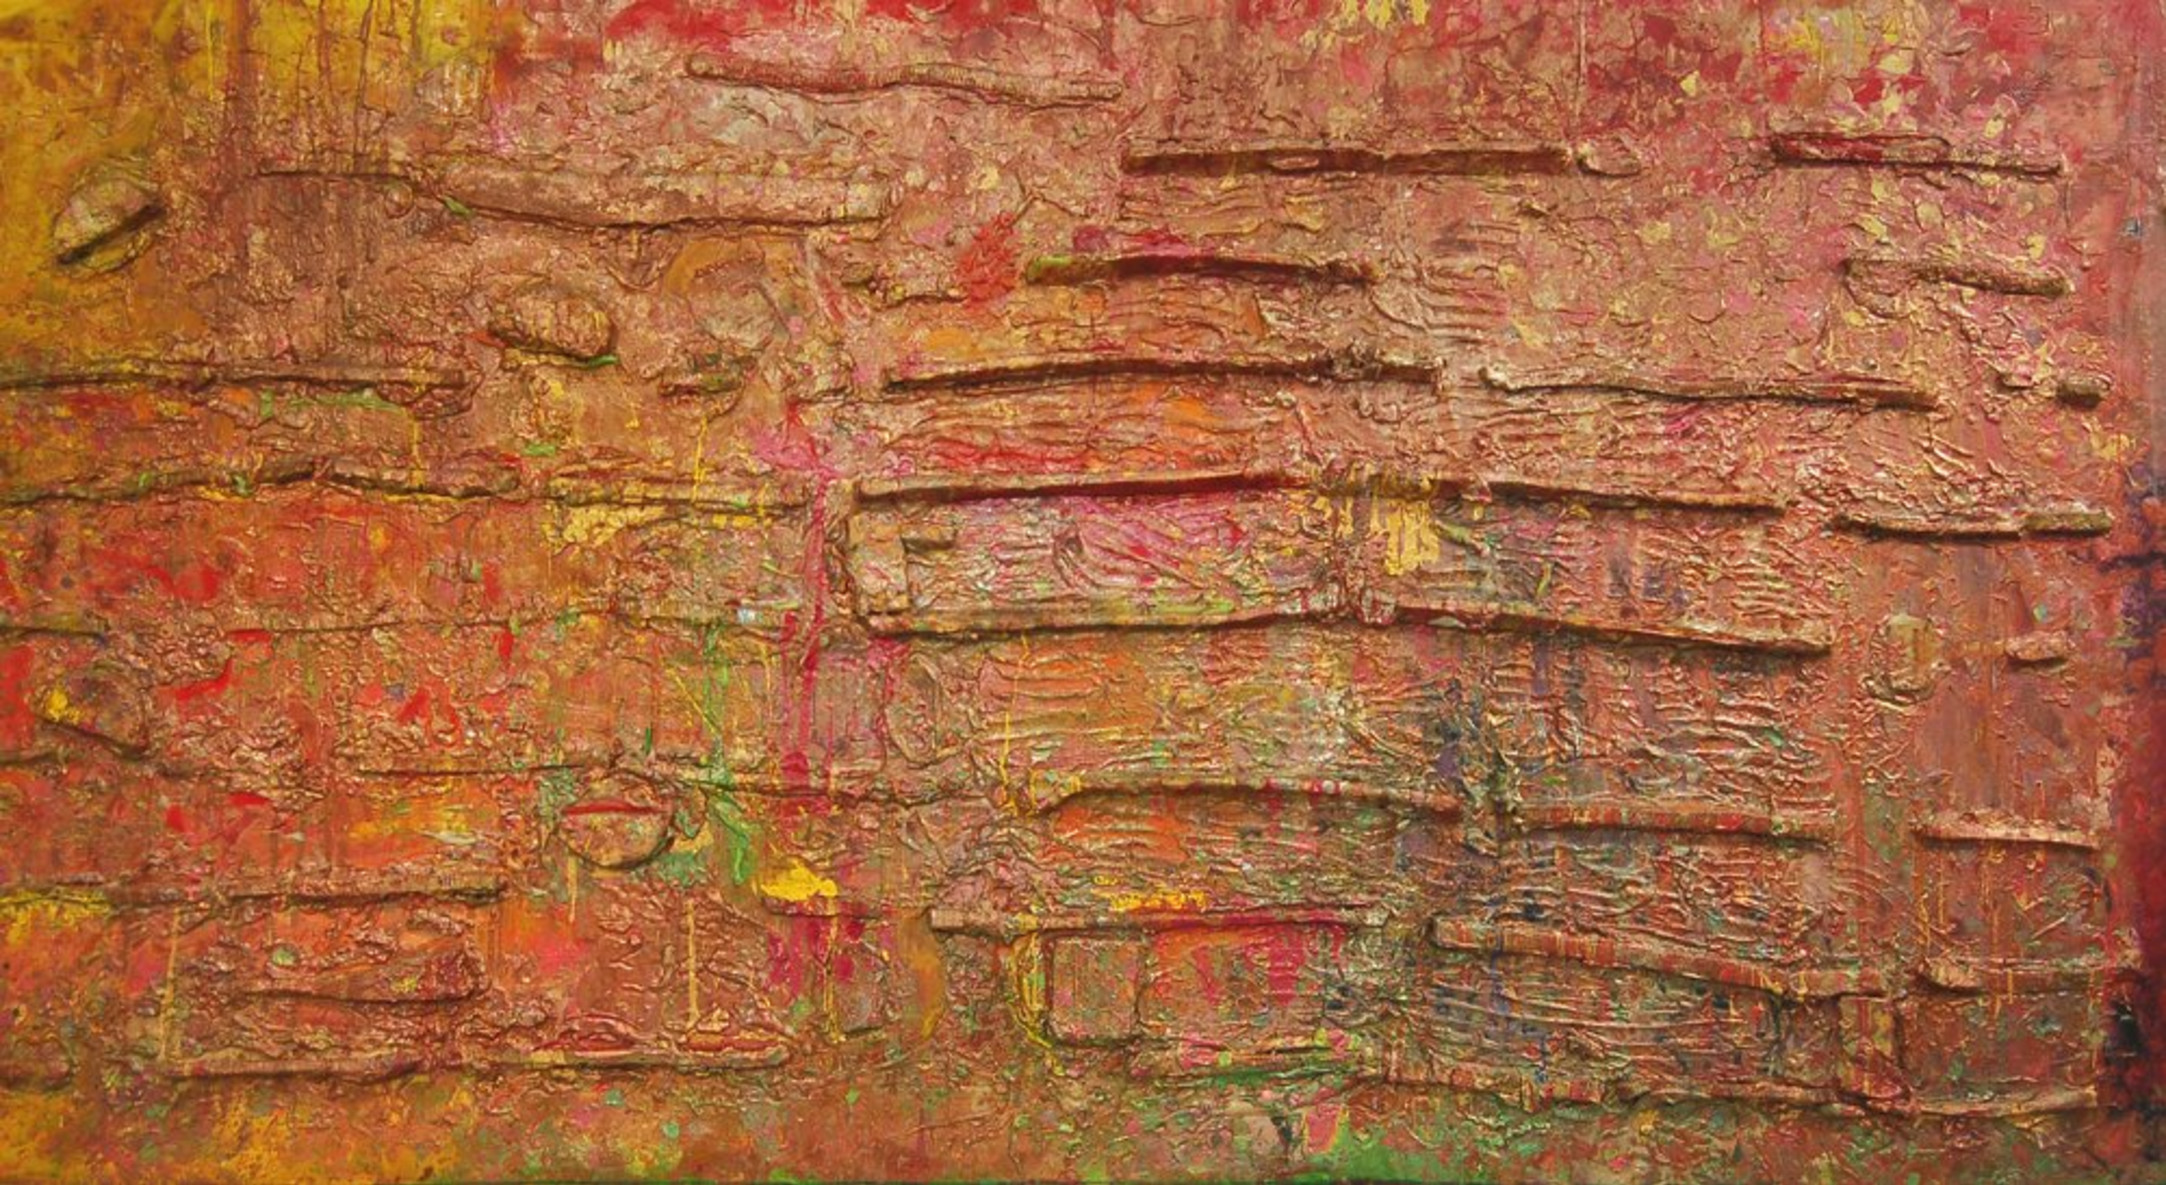 Frank Bowling, Alluviumwold, 1985, Acrylic on canvas, 178.8 x 333 cm, 70 3/8 x 131 1/8 in